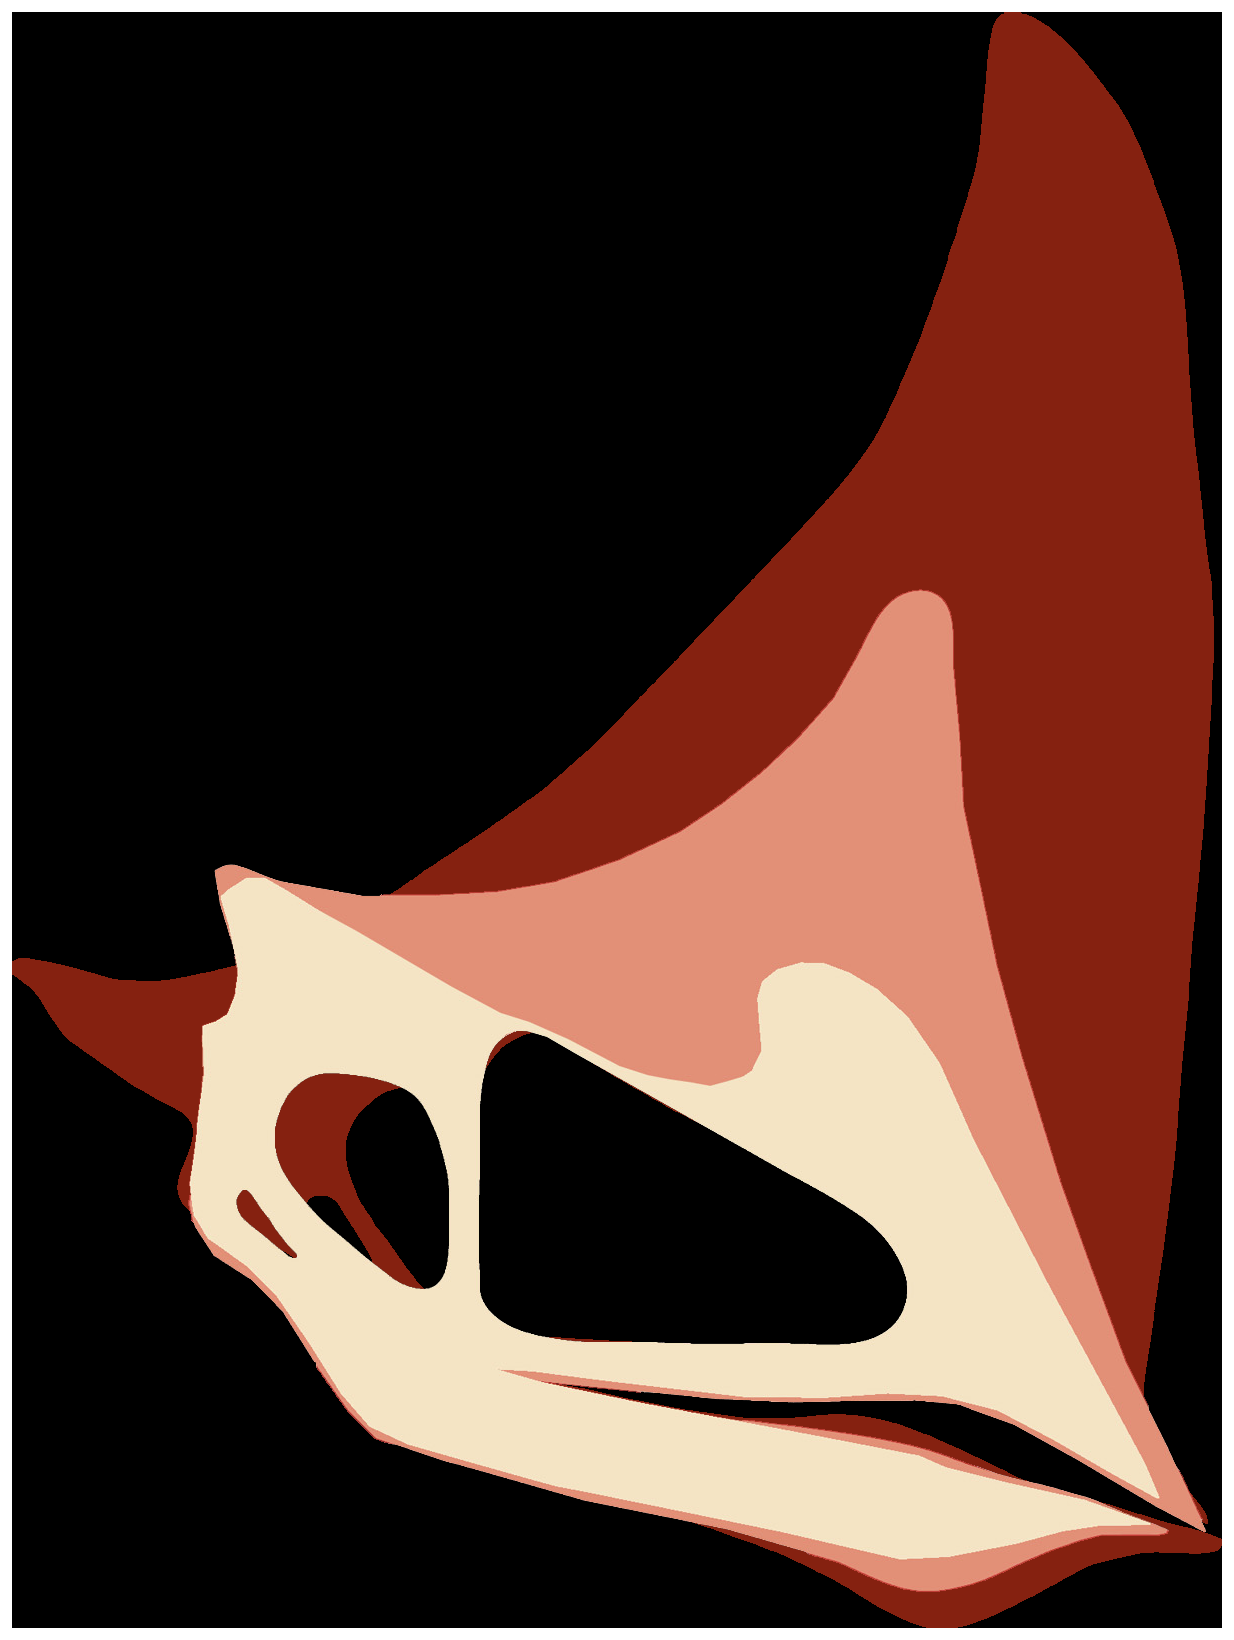 Comparison of adult head crest (dark) and juvenile (light). Image Source: Manzig PC, Kellner AWA, Weinschütz LC, Fragoso CE, Vega CS, et al. (2014) Discovery of a Rare Pterosaur Bone Bed in a Cretaceous Desert with Insights on Ontogeny and Behavior of Flying Reptiles. PLoS ONE 9(8): e100005. doi:10.1371/journal.pone.0100005